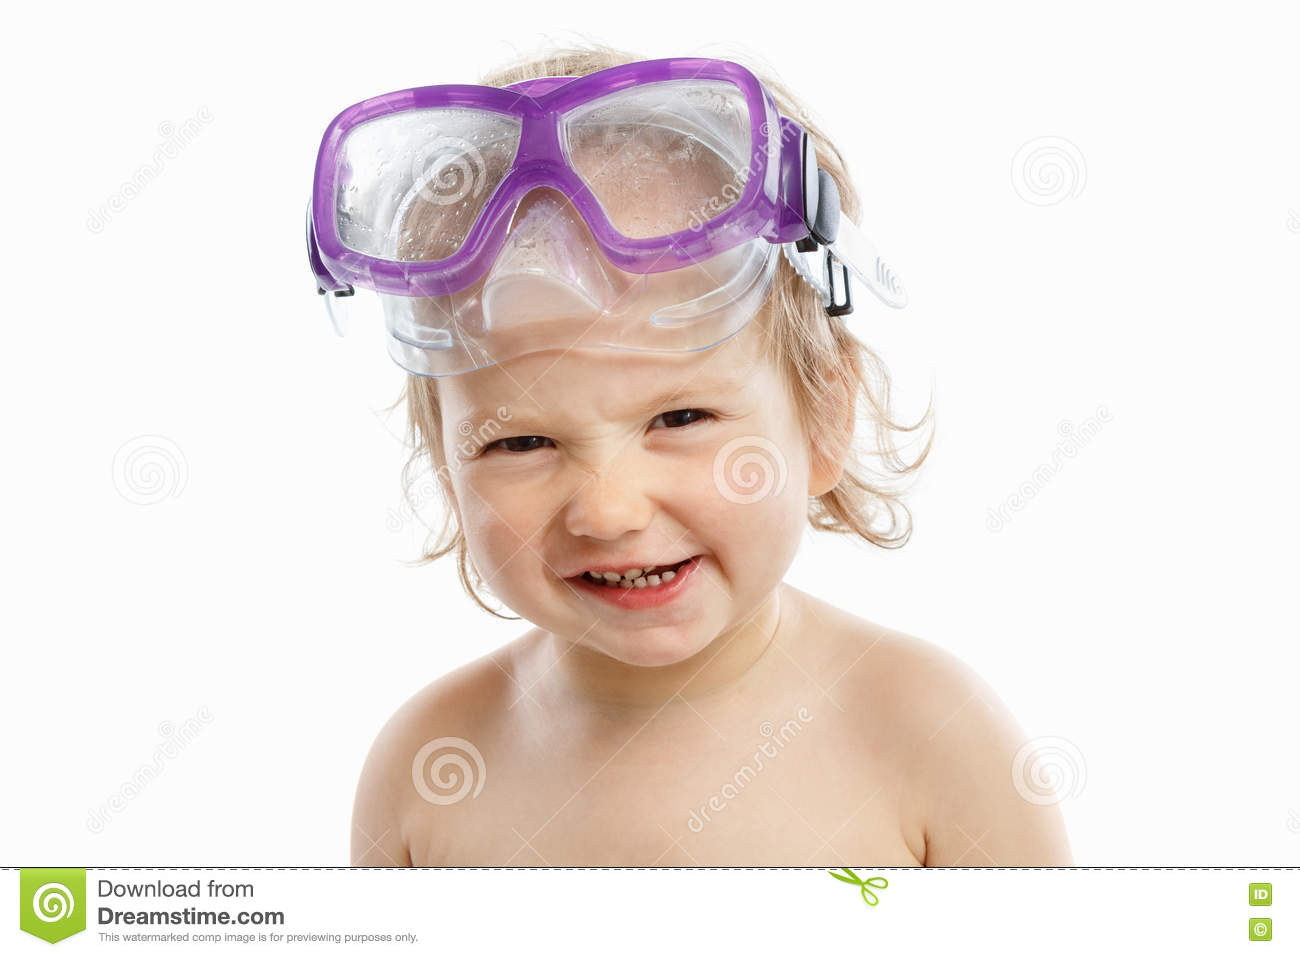 Baby diver in swimming mask with a happy face close-up portrait, on white